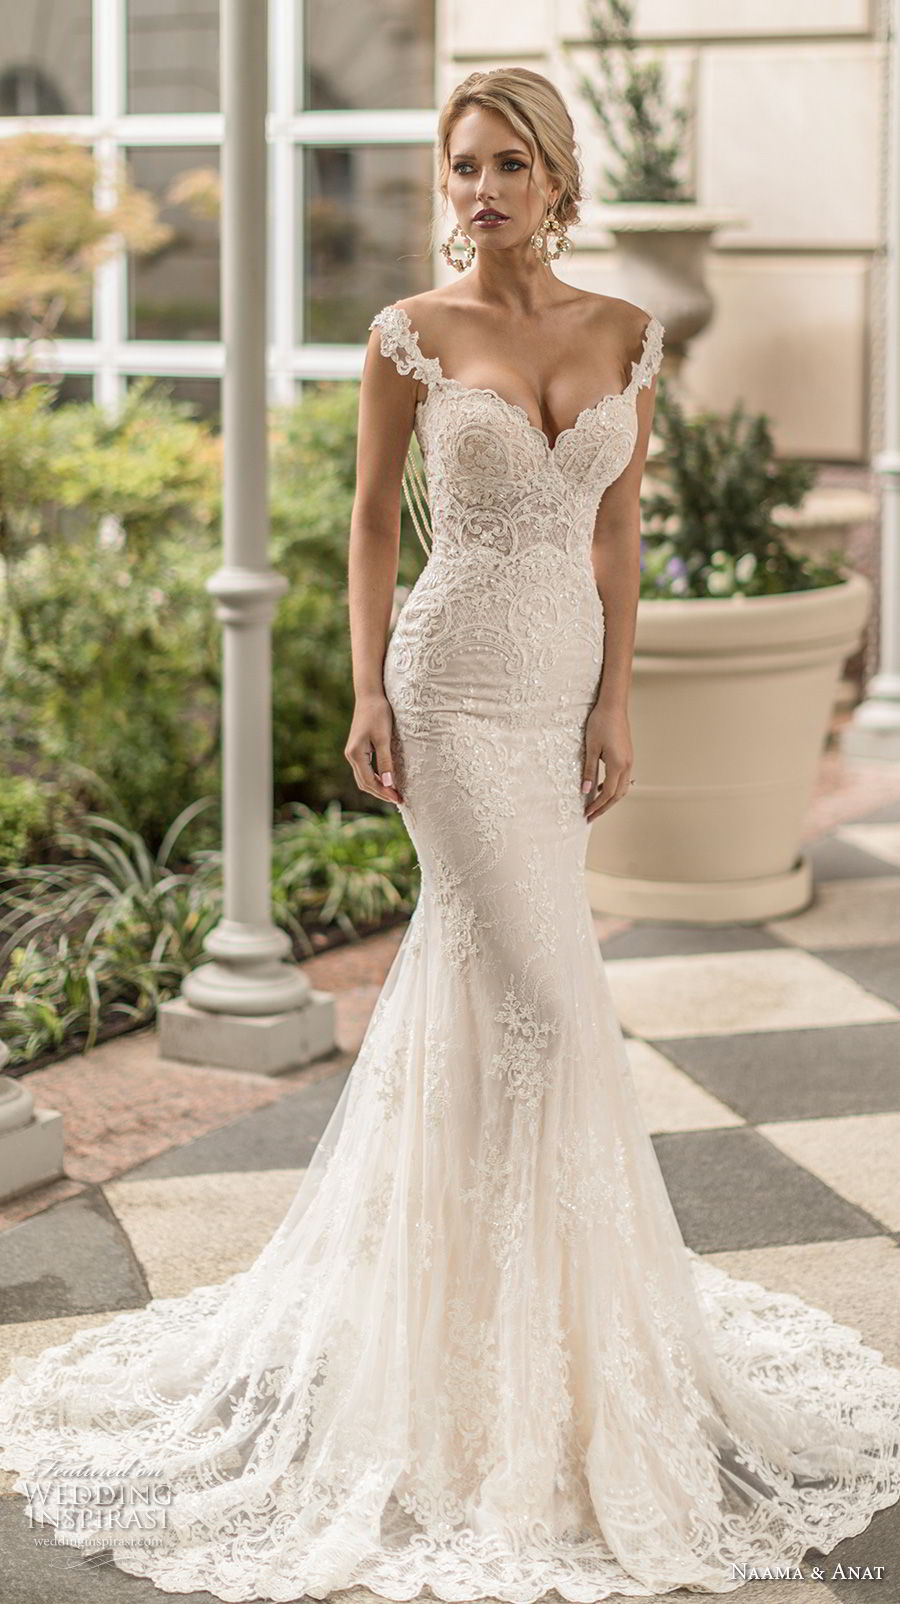 naama anat spring 2019 bridal sleeveless embellished strap sweetheart neckline full embellishment elegant fit and flare mermaid wedding dress open low back sweep train (2) mv